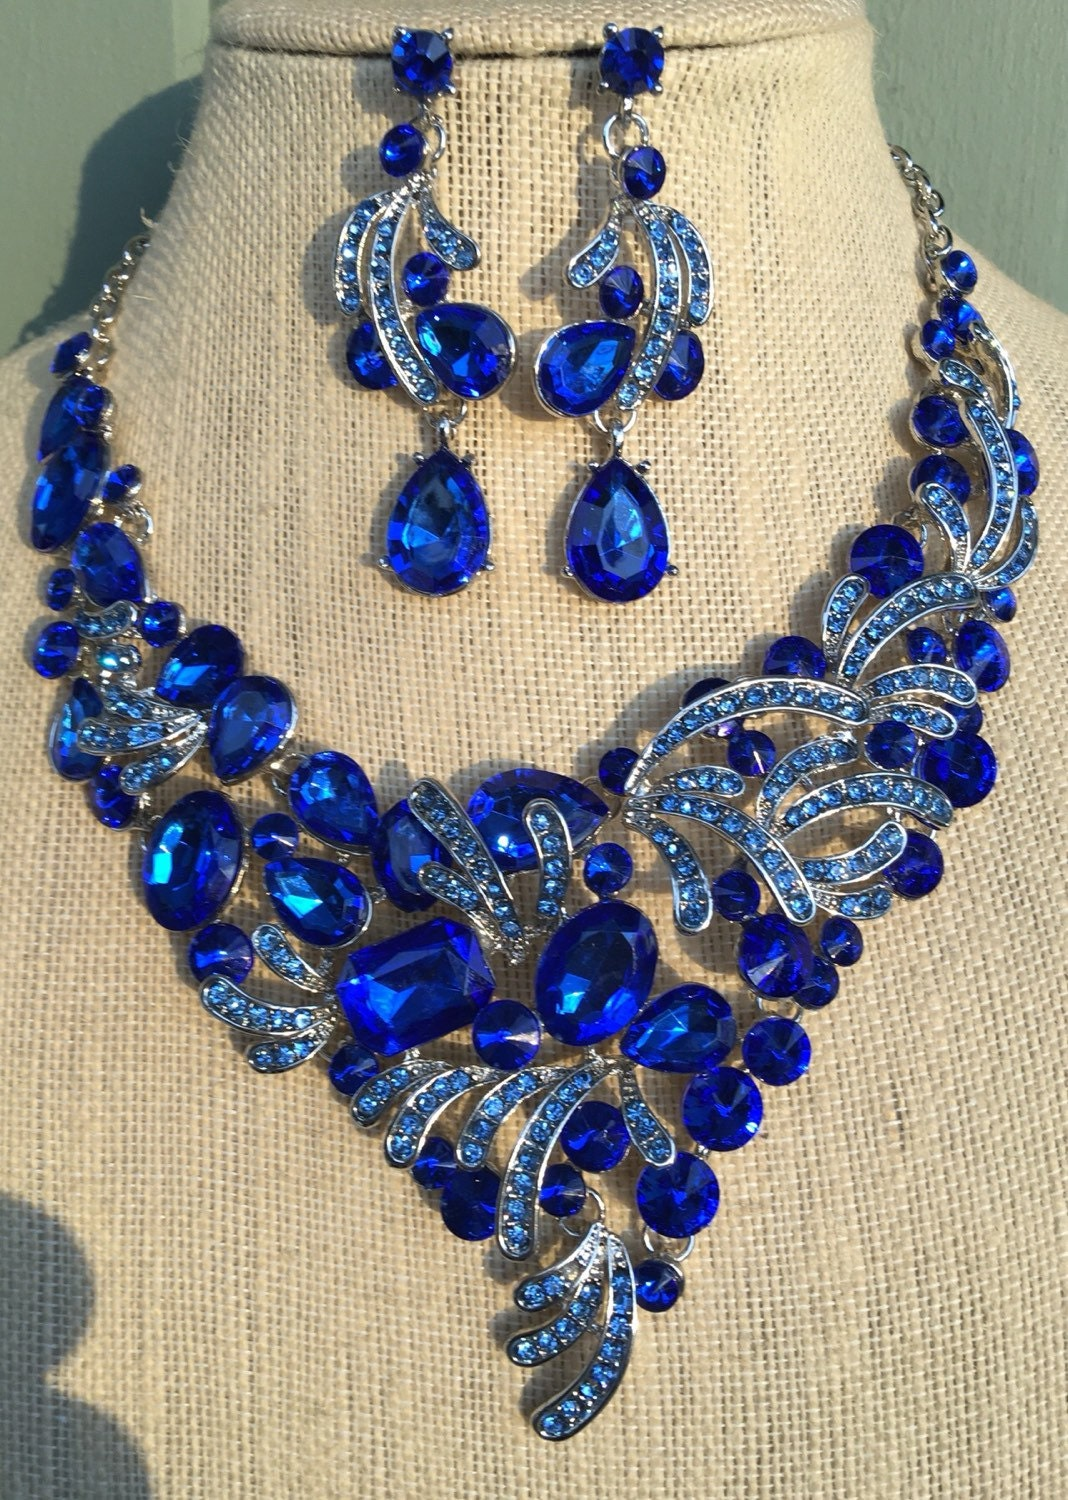 Gorgeous Sapphire Royal Blue Rhinestone Statement Necklace And